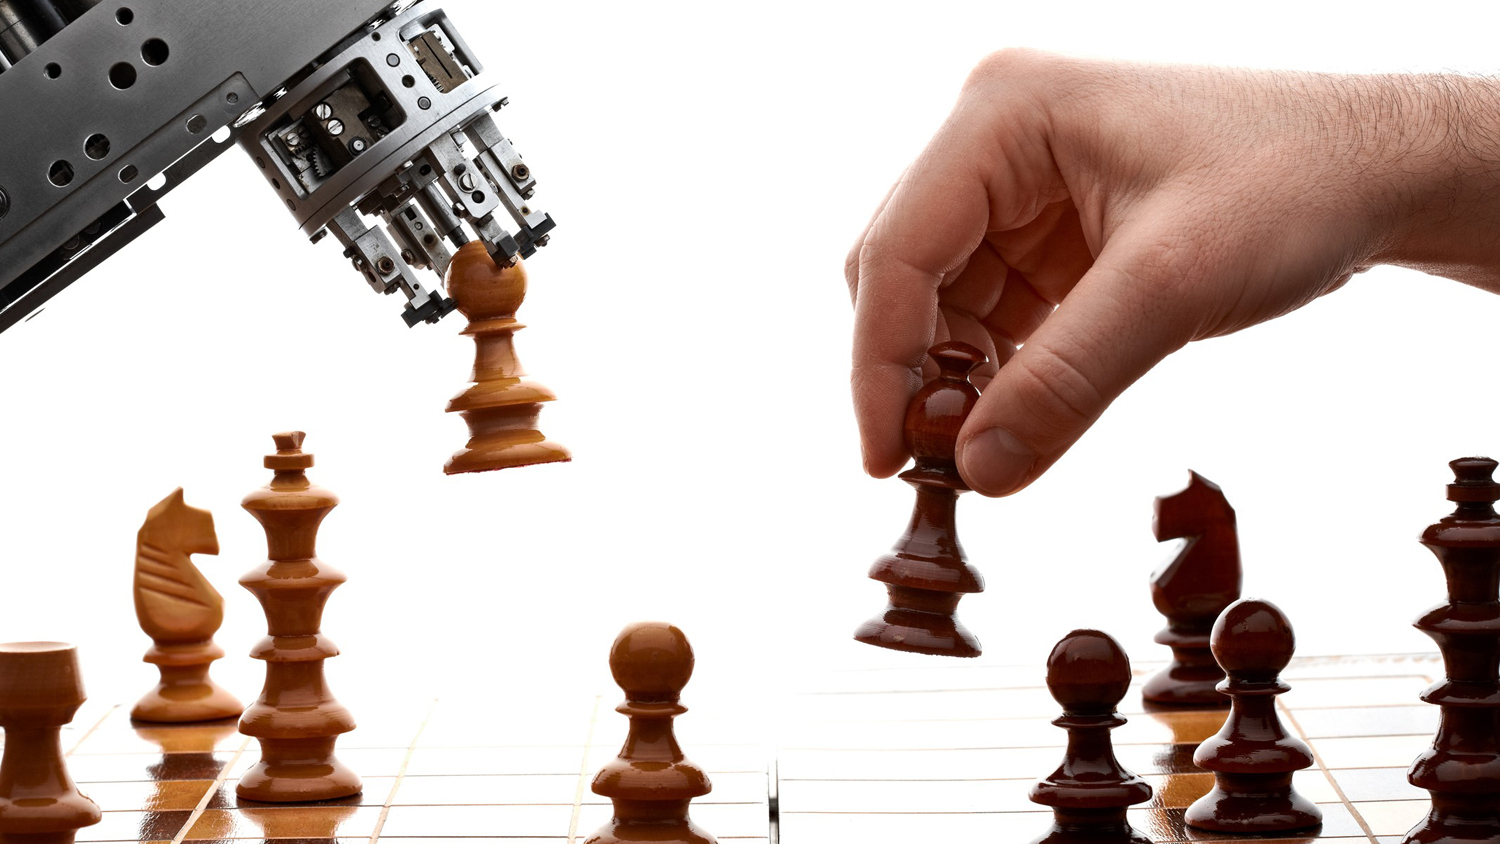 New A.I. or Robotic Developers Can Utilize R&D Tax Credits